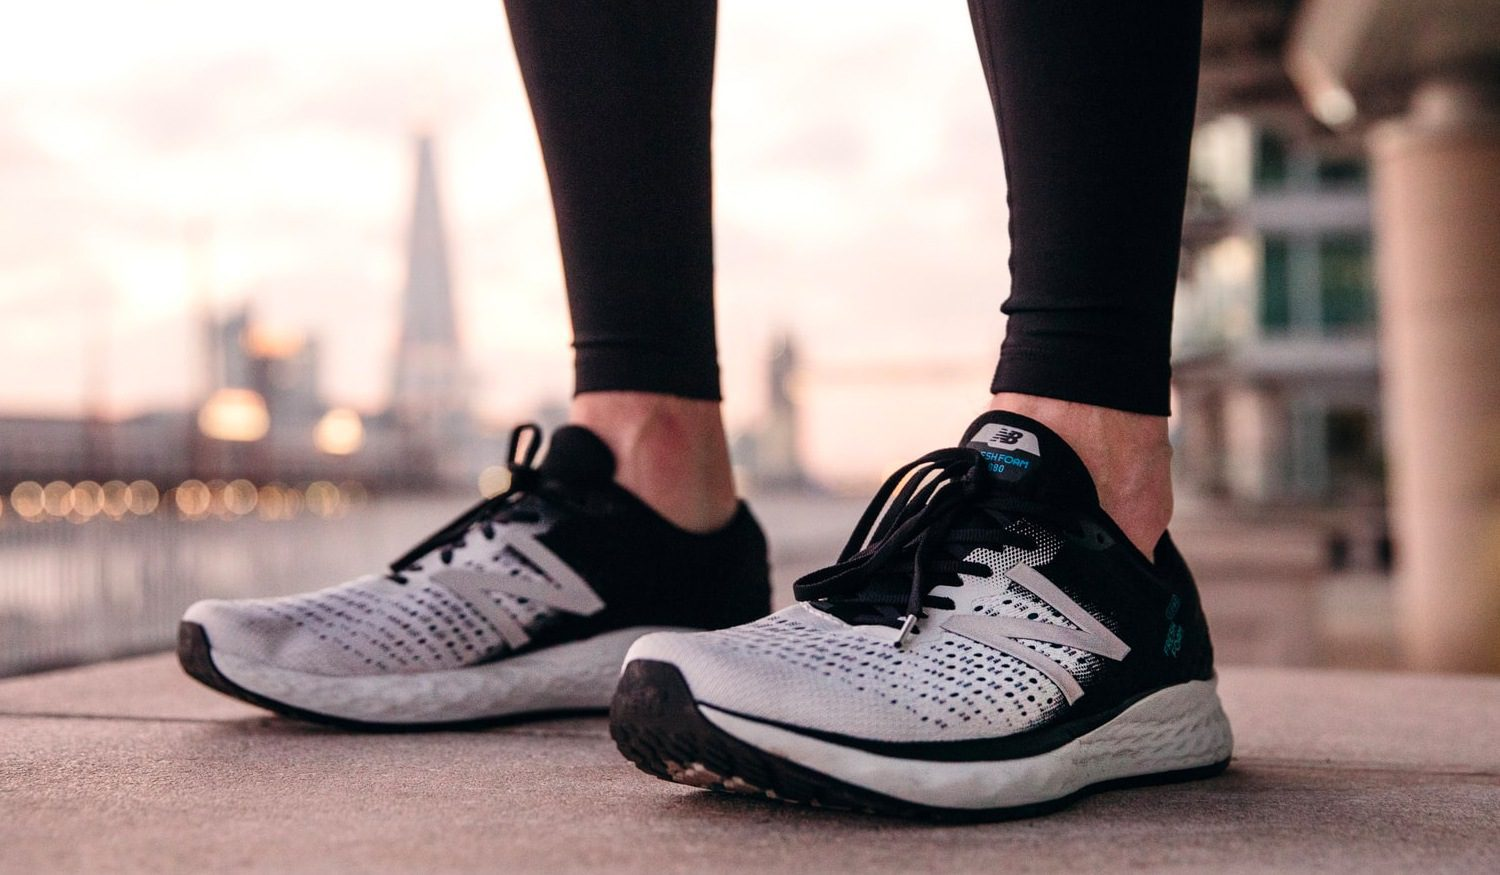 The Best Running Shoes Brands In The World: 2021 Edition